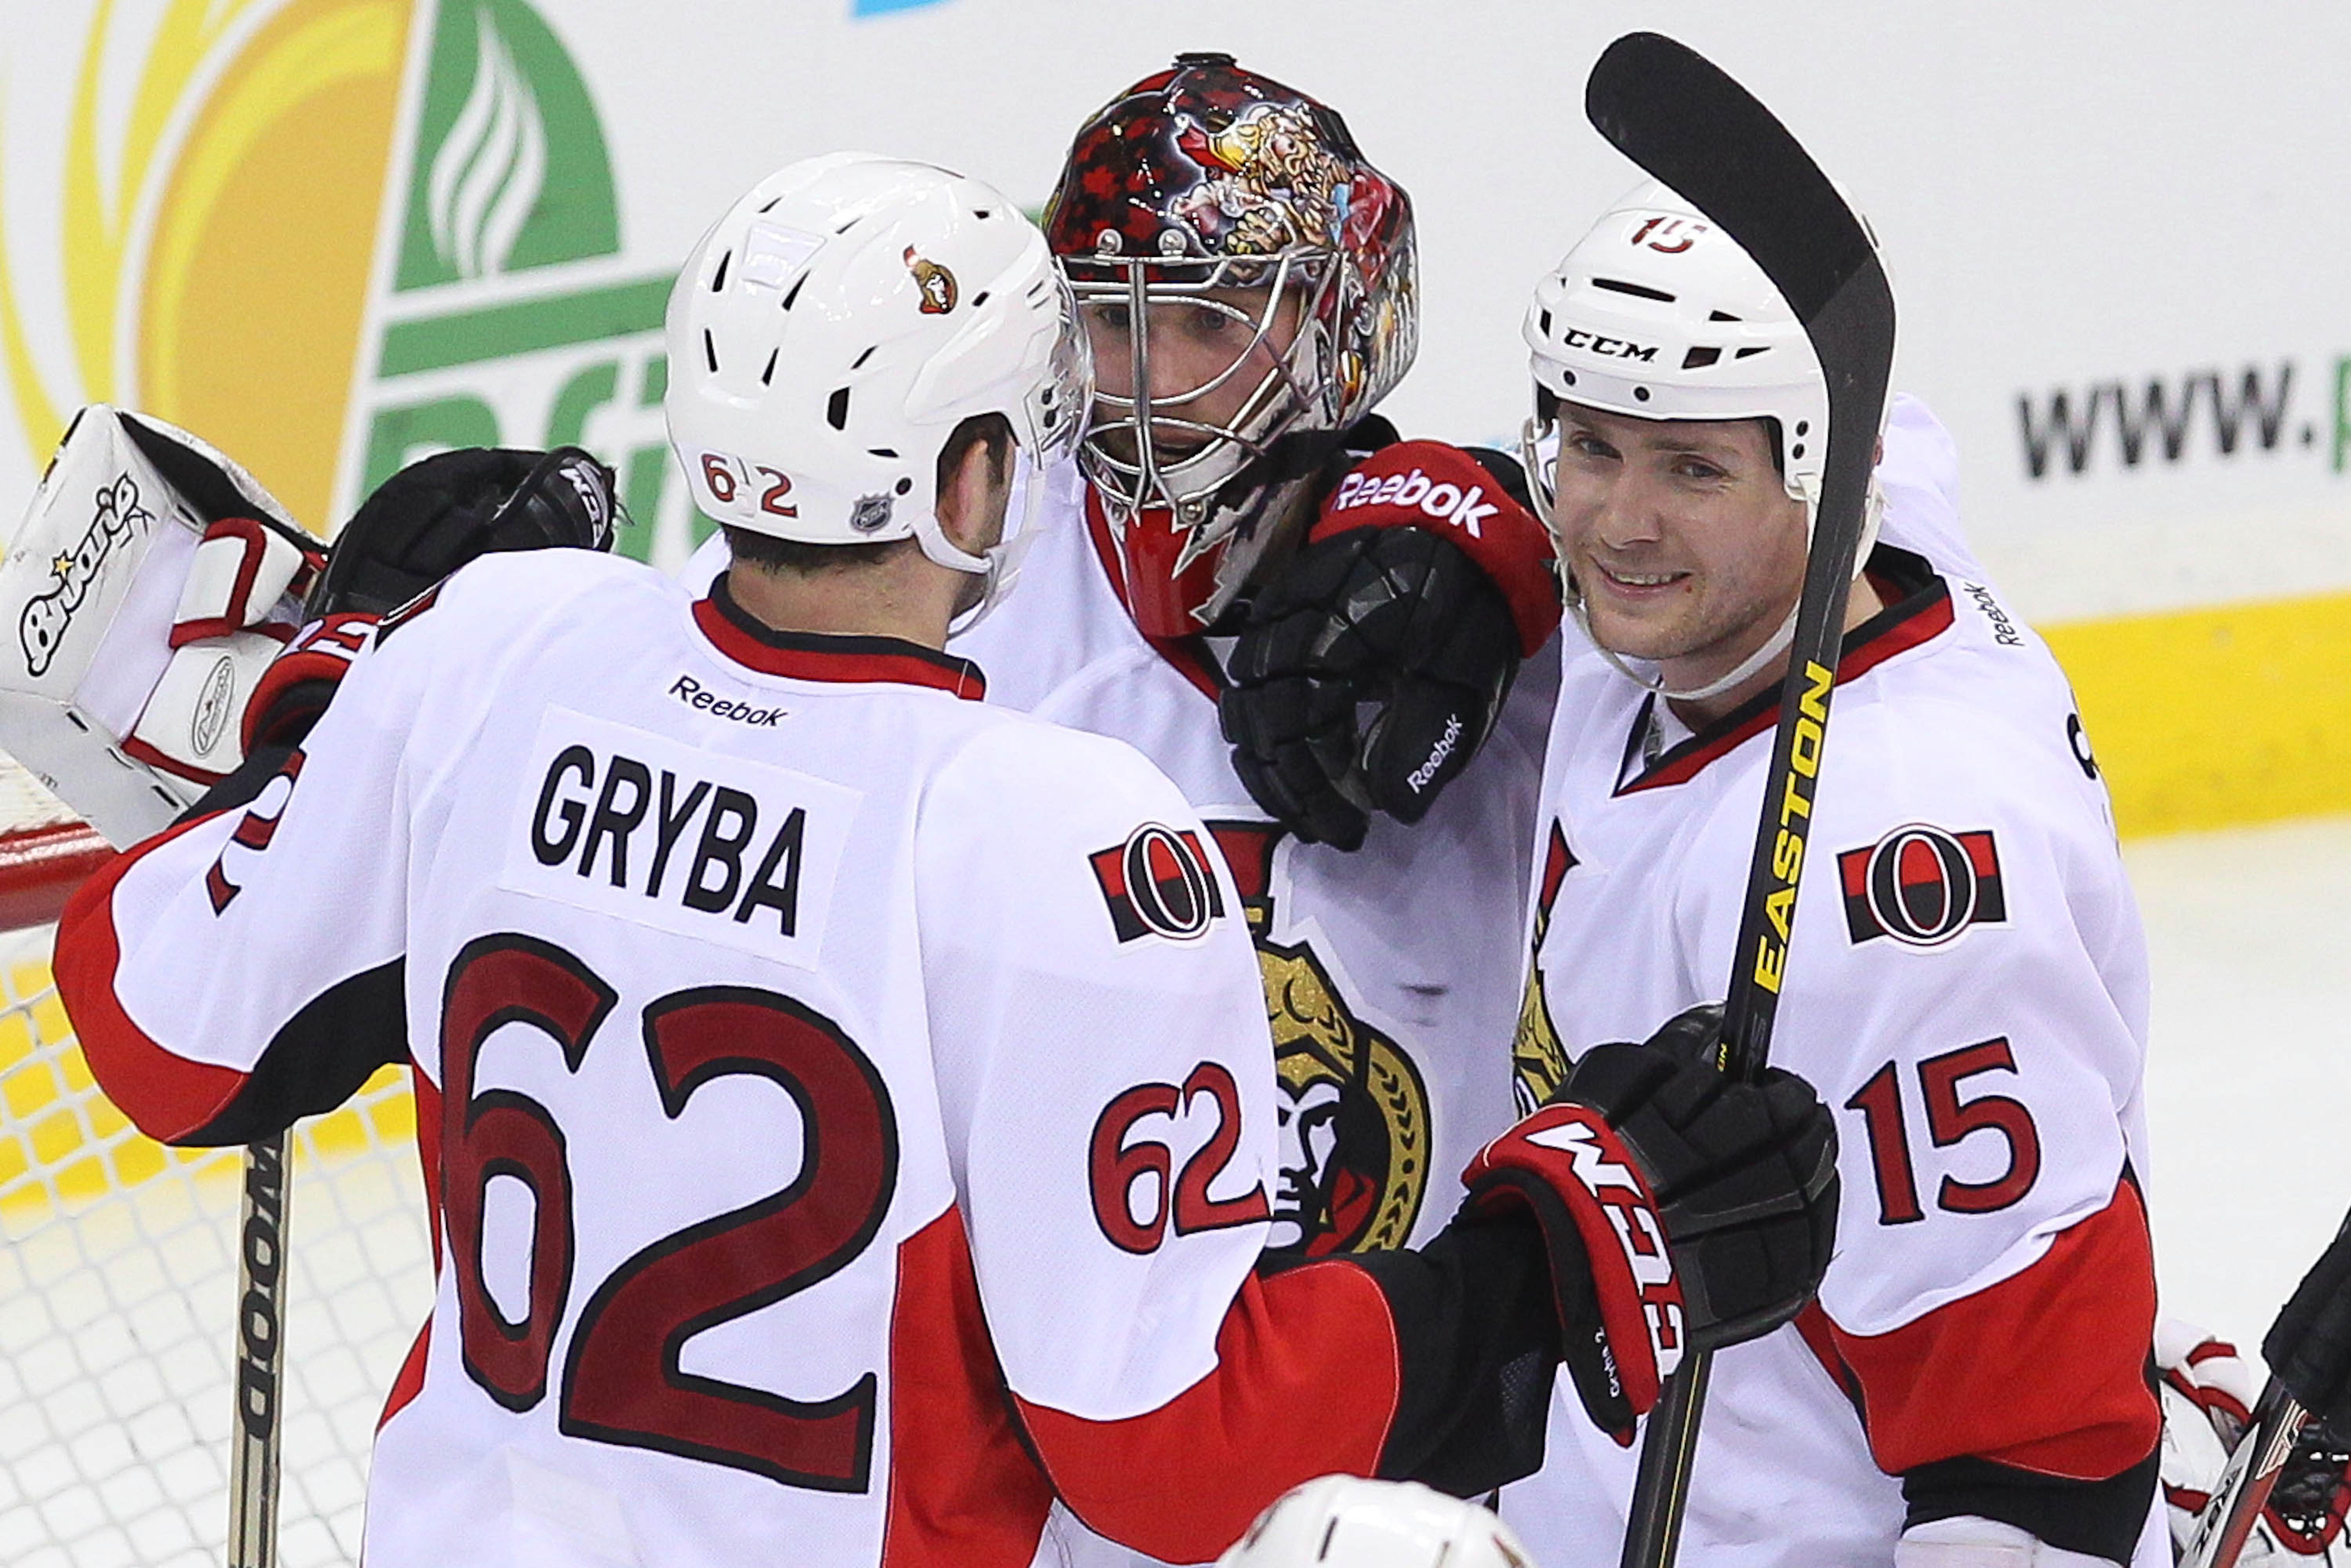 Keeping pucks out of the net will be crucial for the Senators in this series.